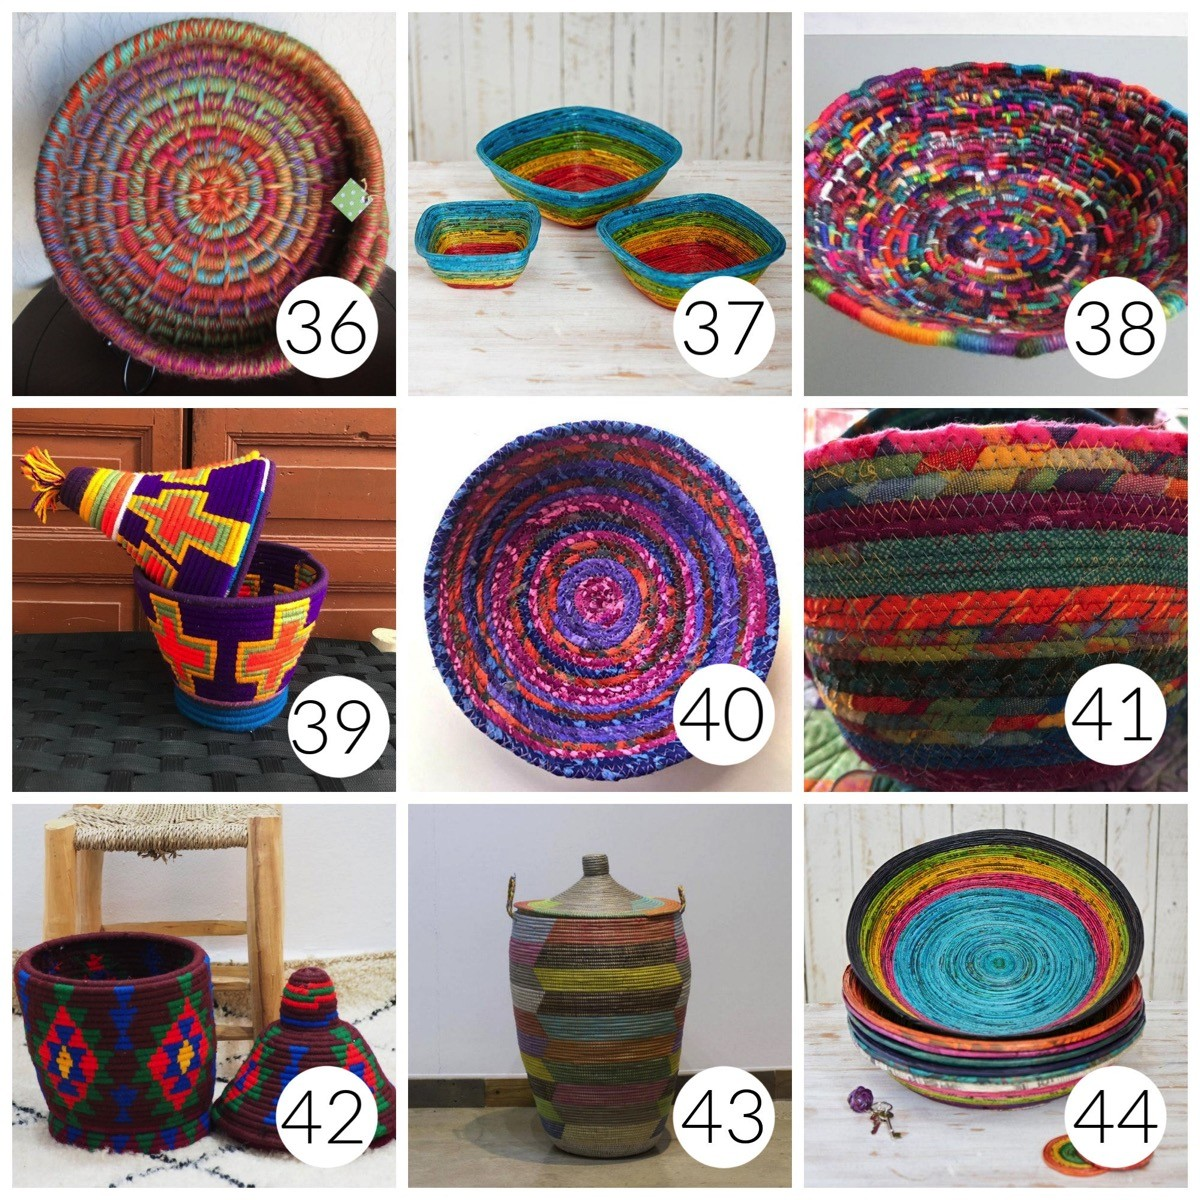 List of most colorful baskets online